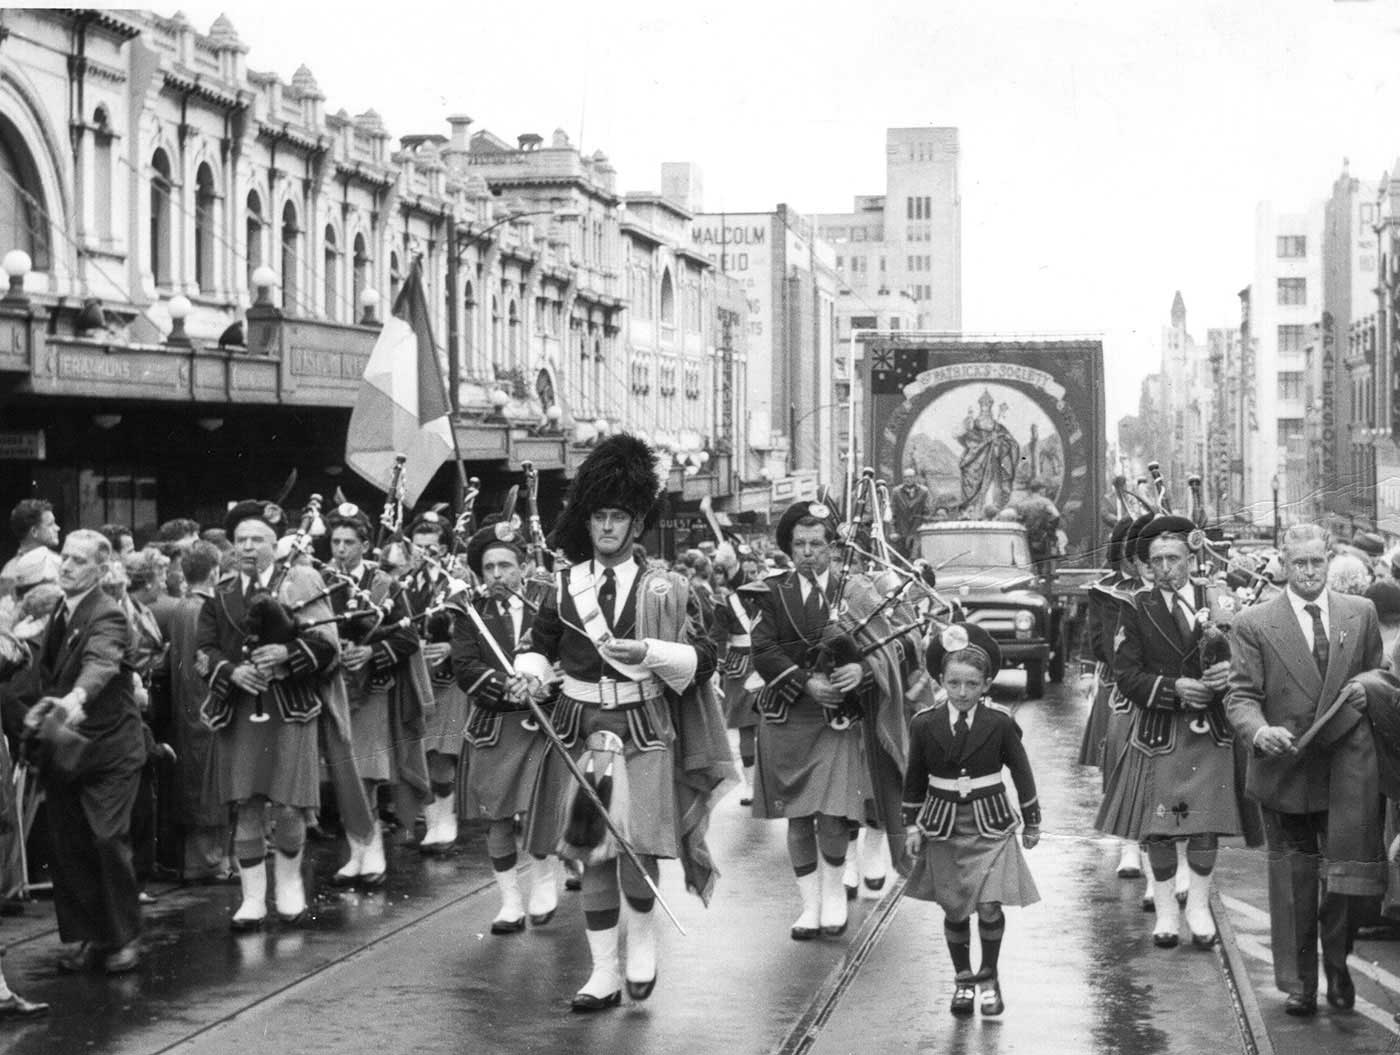 Black and white photo of a procession of bag pipe players walking down a city street with crowds looking on.